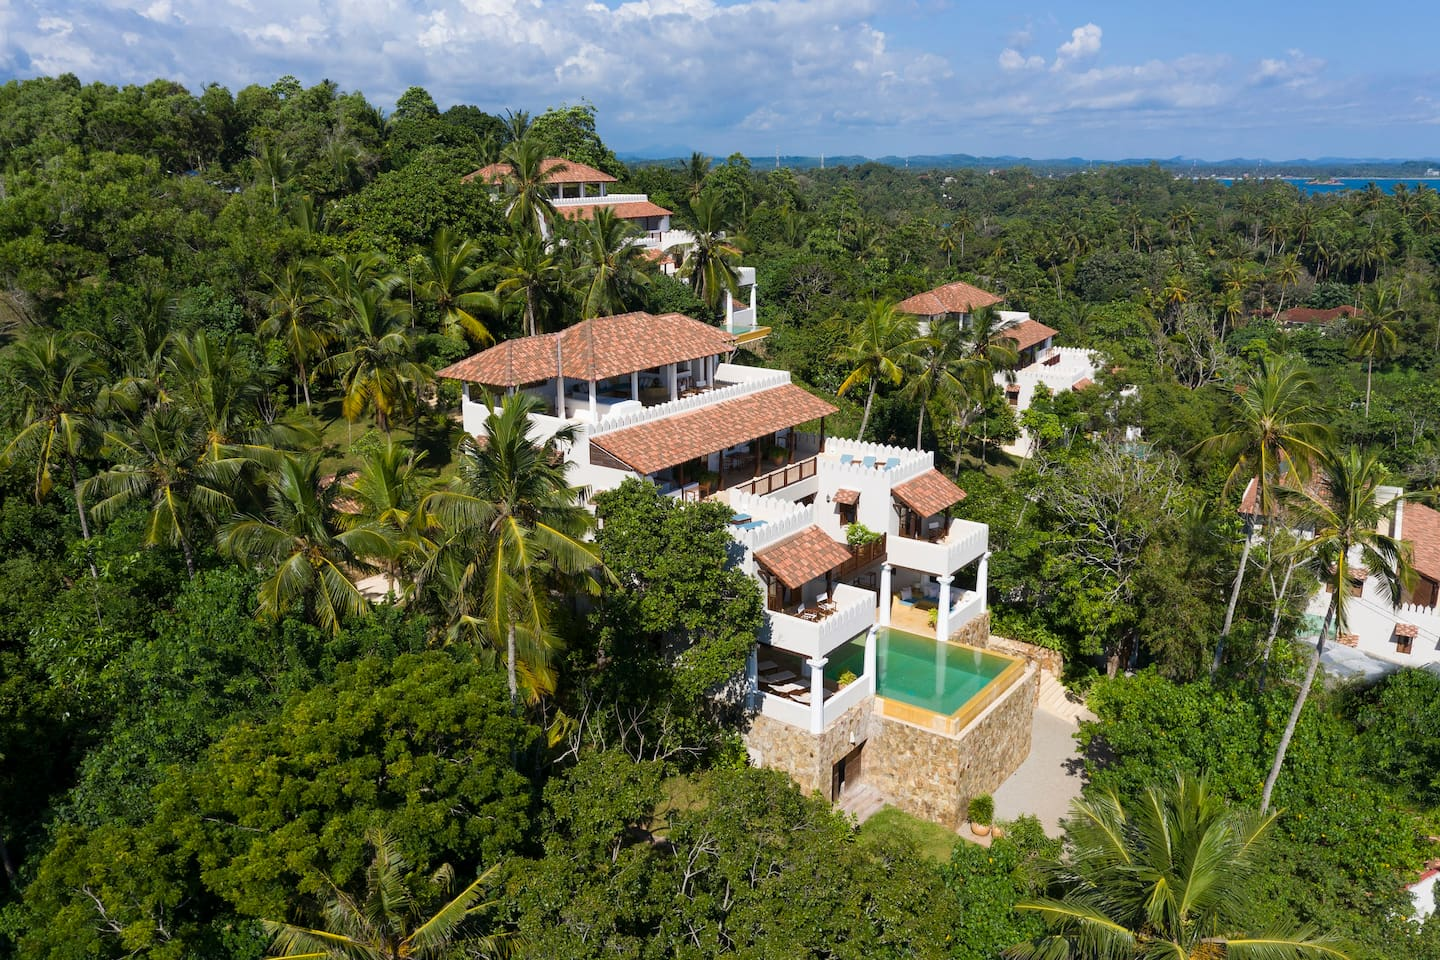 ON Houses - nestled in their tropical gardens